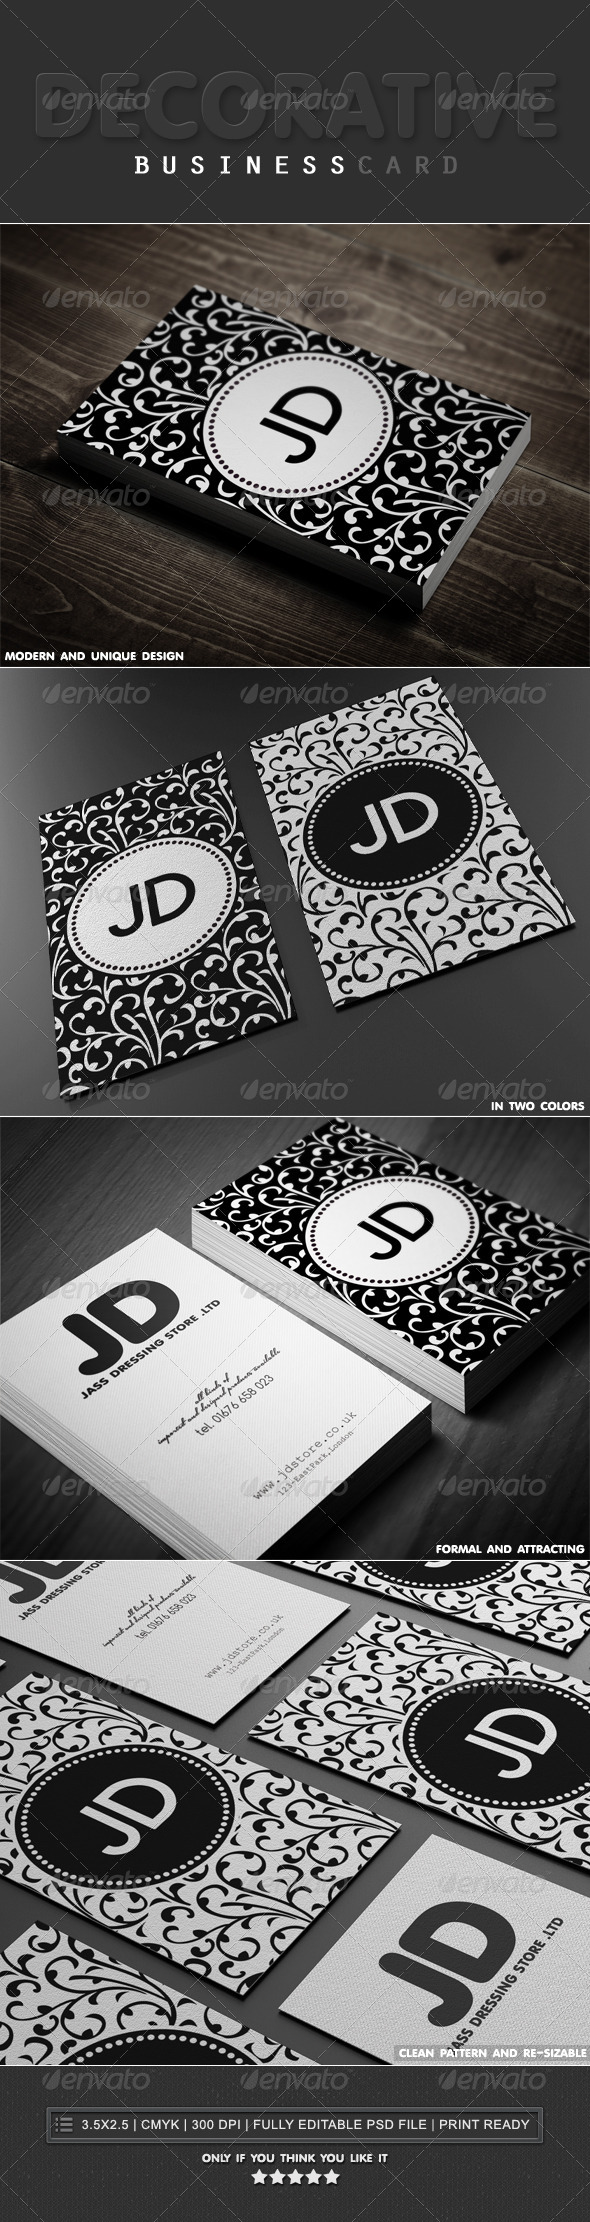 Decorative Business Cards - Creative Business Cards